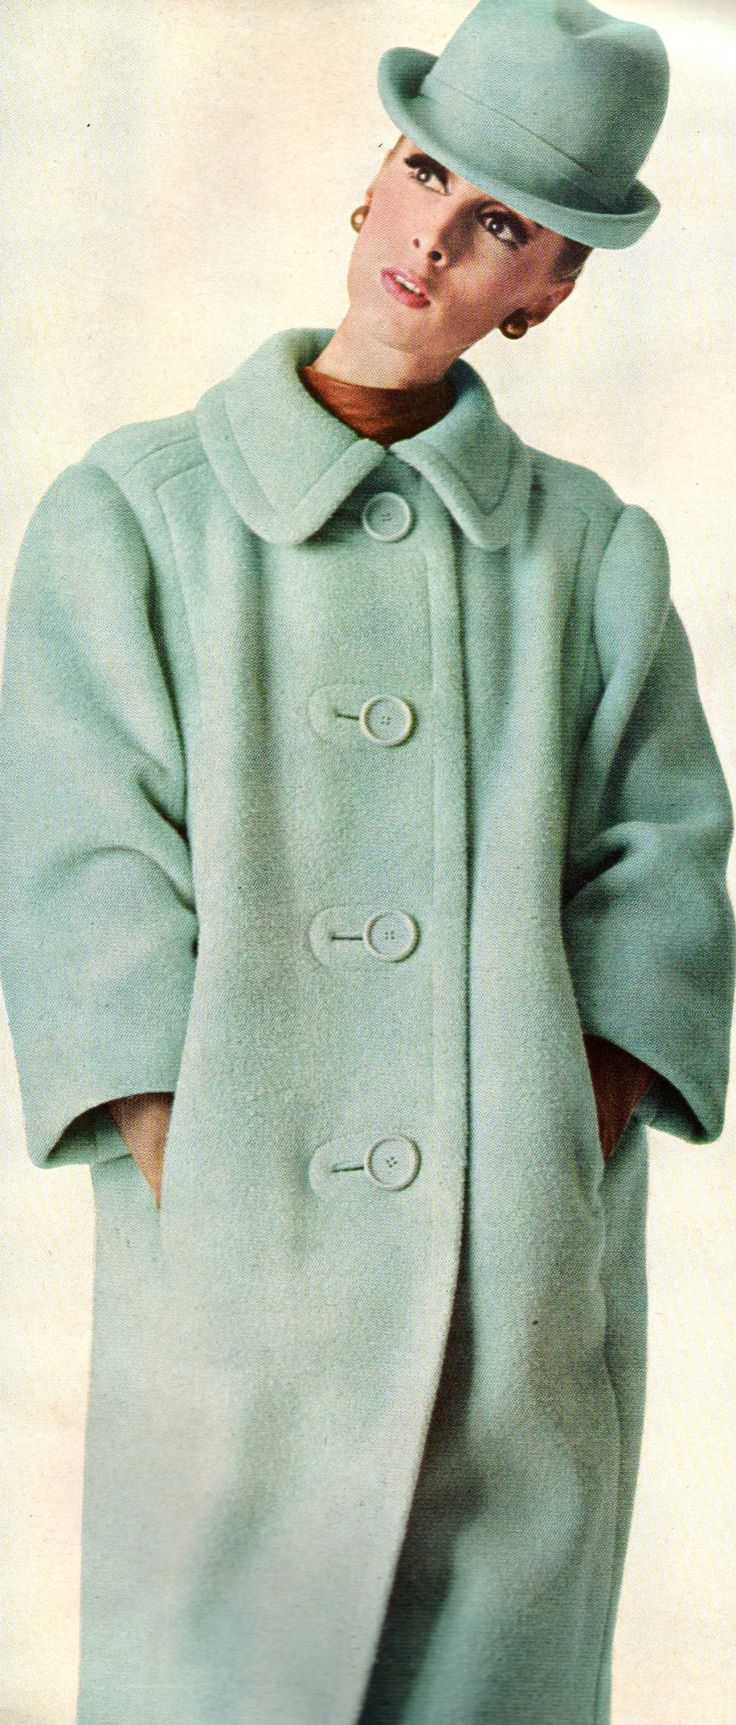 Wilhelmina wearing Leslie Morris coat at Bergdorf Goodman, hat Halston 1966